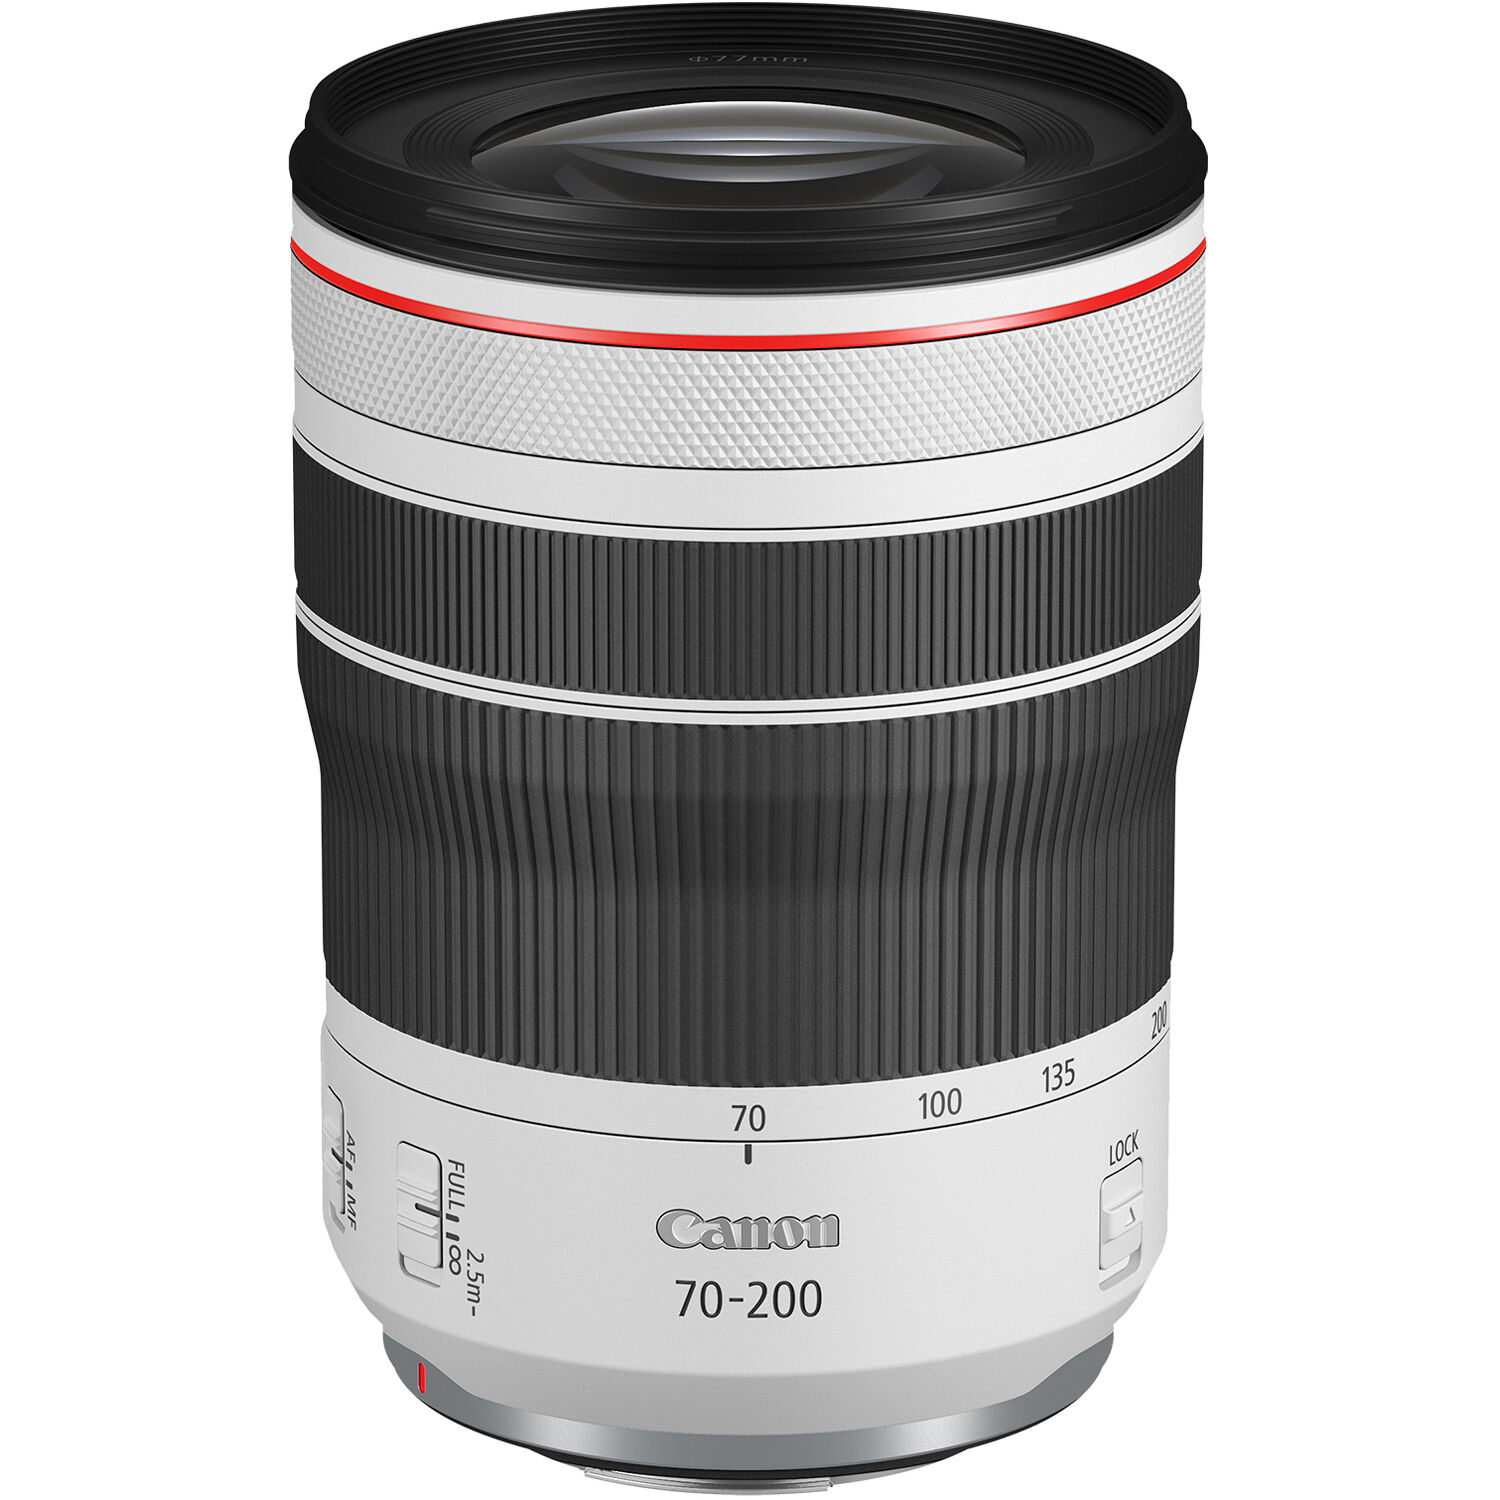 new rf lens from canon